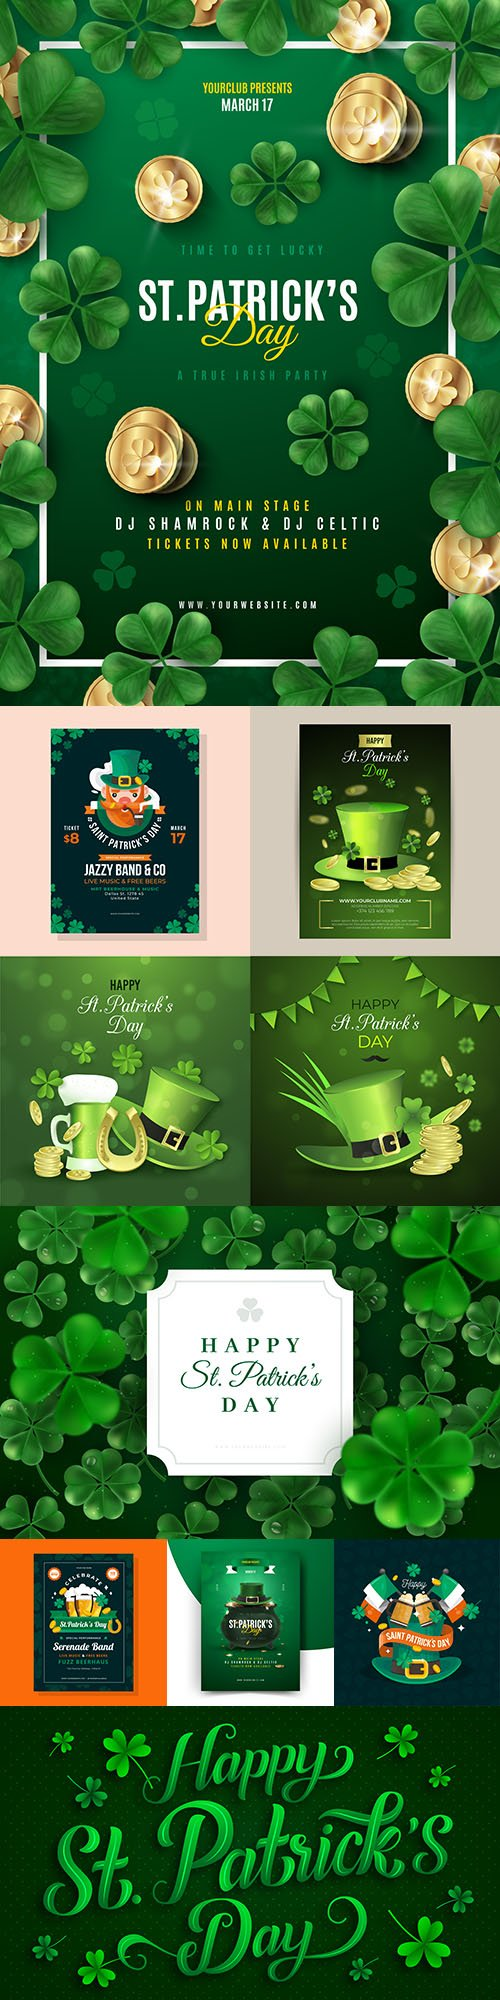 St. Patrick 's Day party design illustrations 2